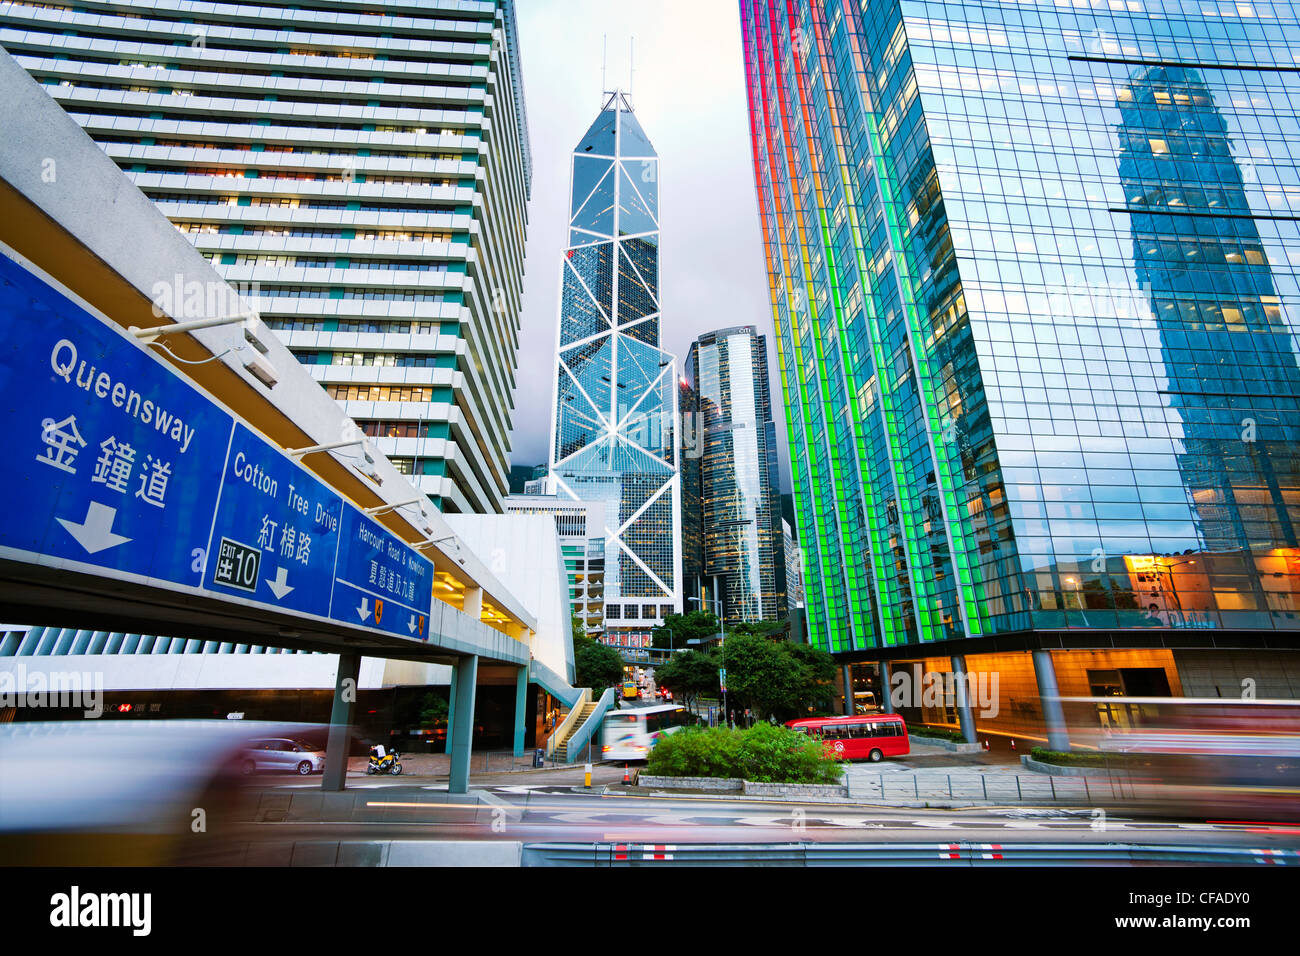 Hong Kong skyline at dusk, Central business and financial district, Bank of China building, Hong Kong Island, China - Stock Image